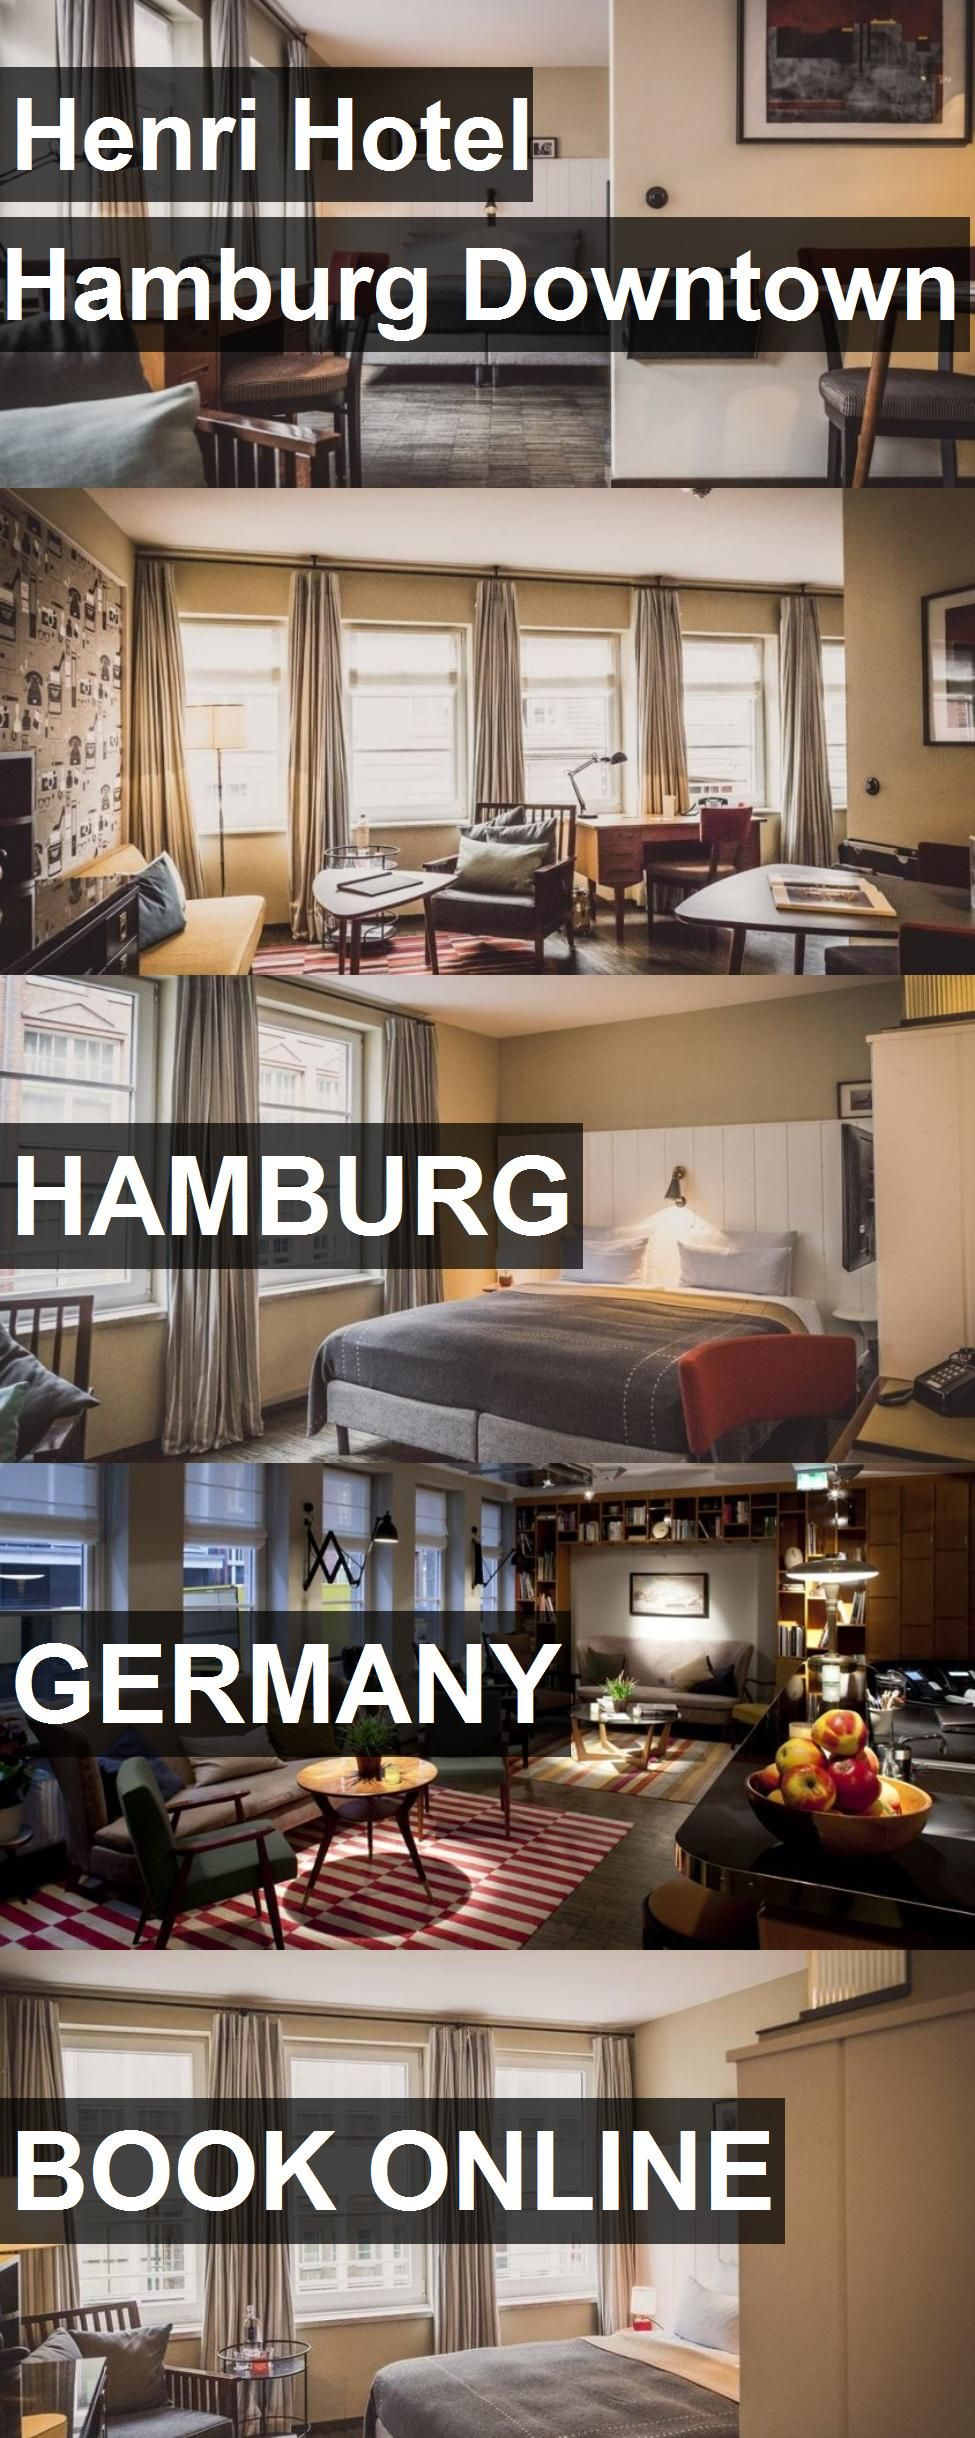 Hotel Henri Hamburg Hotel Henri Hotel Hamburg Downtown In Hamburg Germany For More